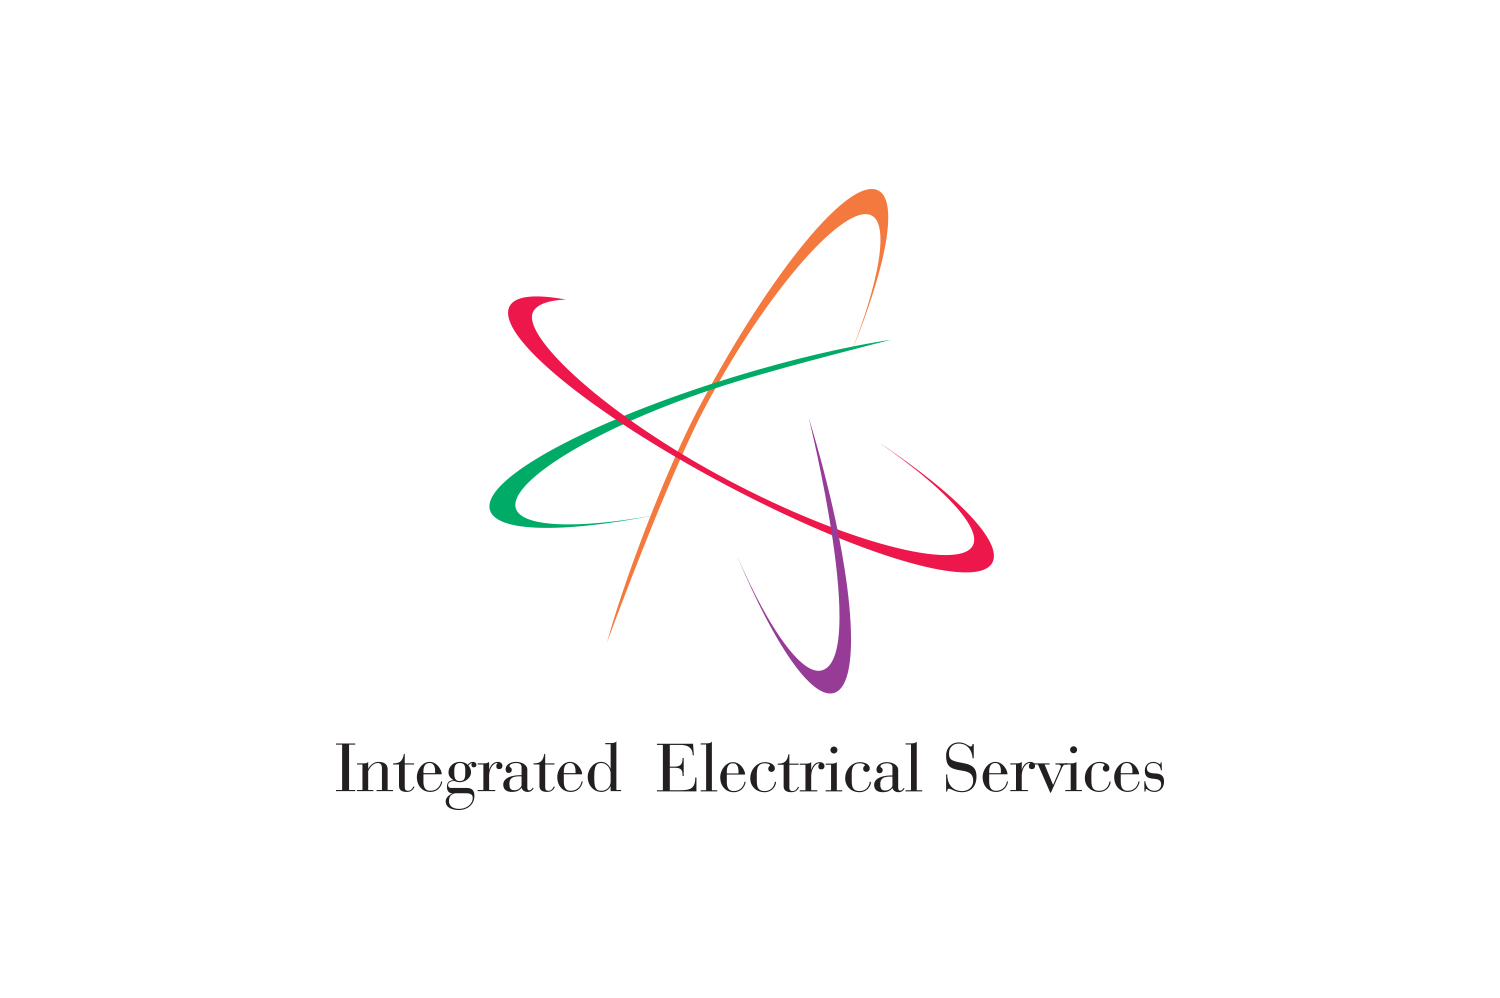 Integrated Electrical Services